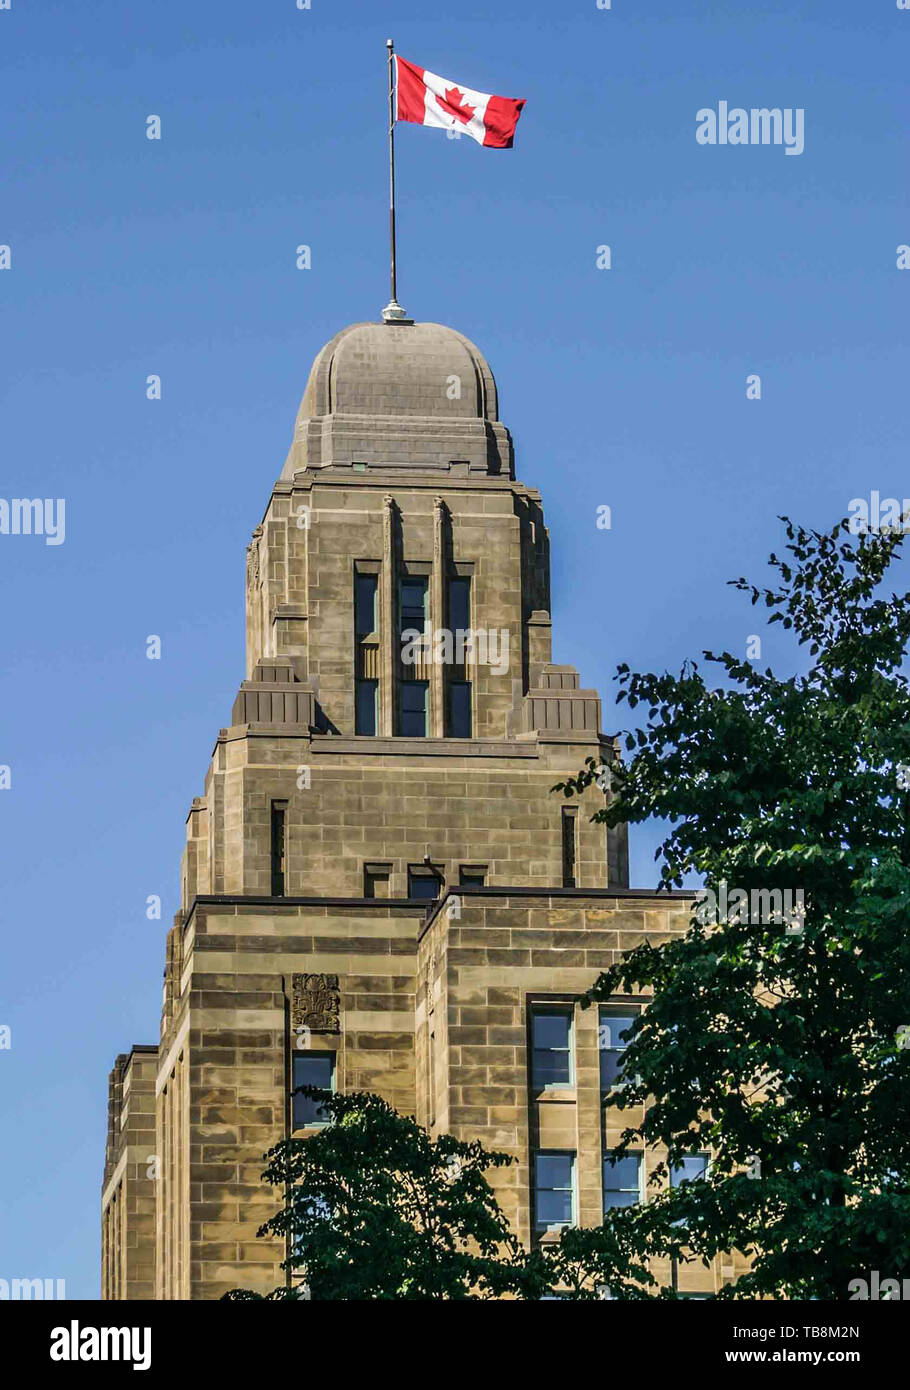 Halifax, Nova Scotia, Canada. 5th Sep, 2005. The Dominion Public Building in Halifax, Nova Scotia. served as the central post office for the City of Halifax and housed various government offices. Credit: Arnold Drapkin/ZUMA Wire/Alamy Live News - Stock Image